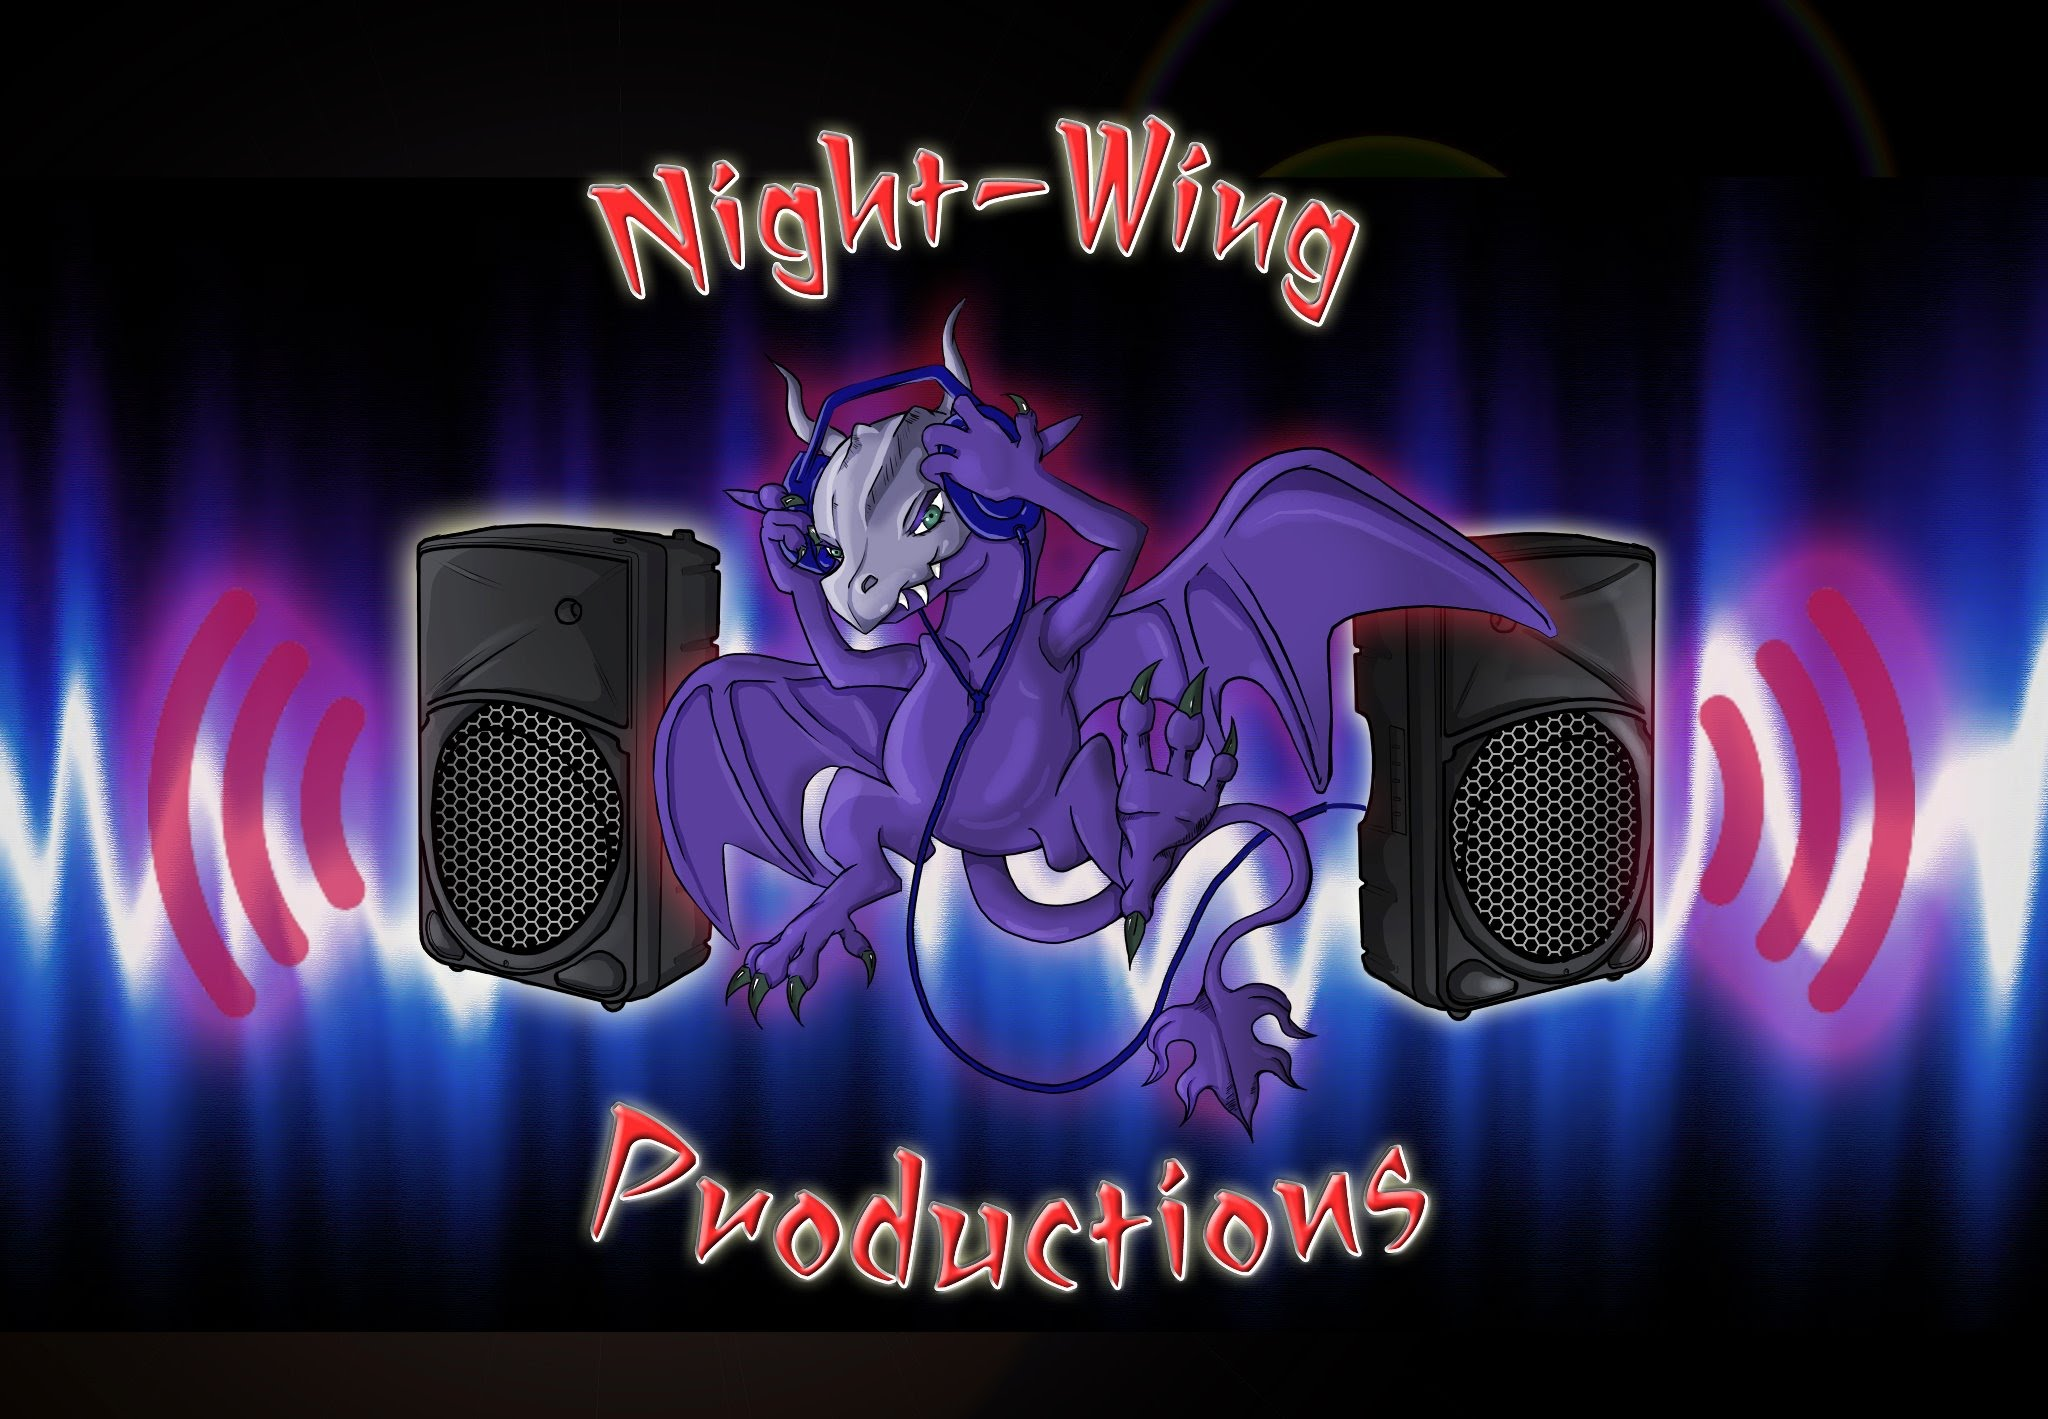 Night-Wing Productions